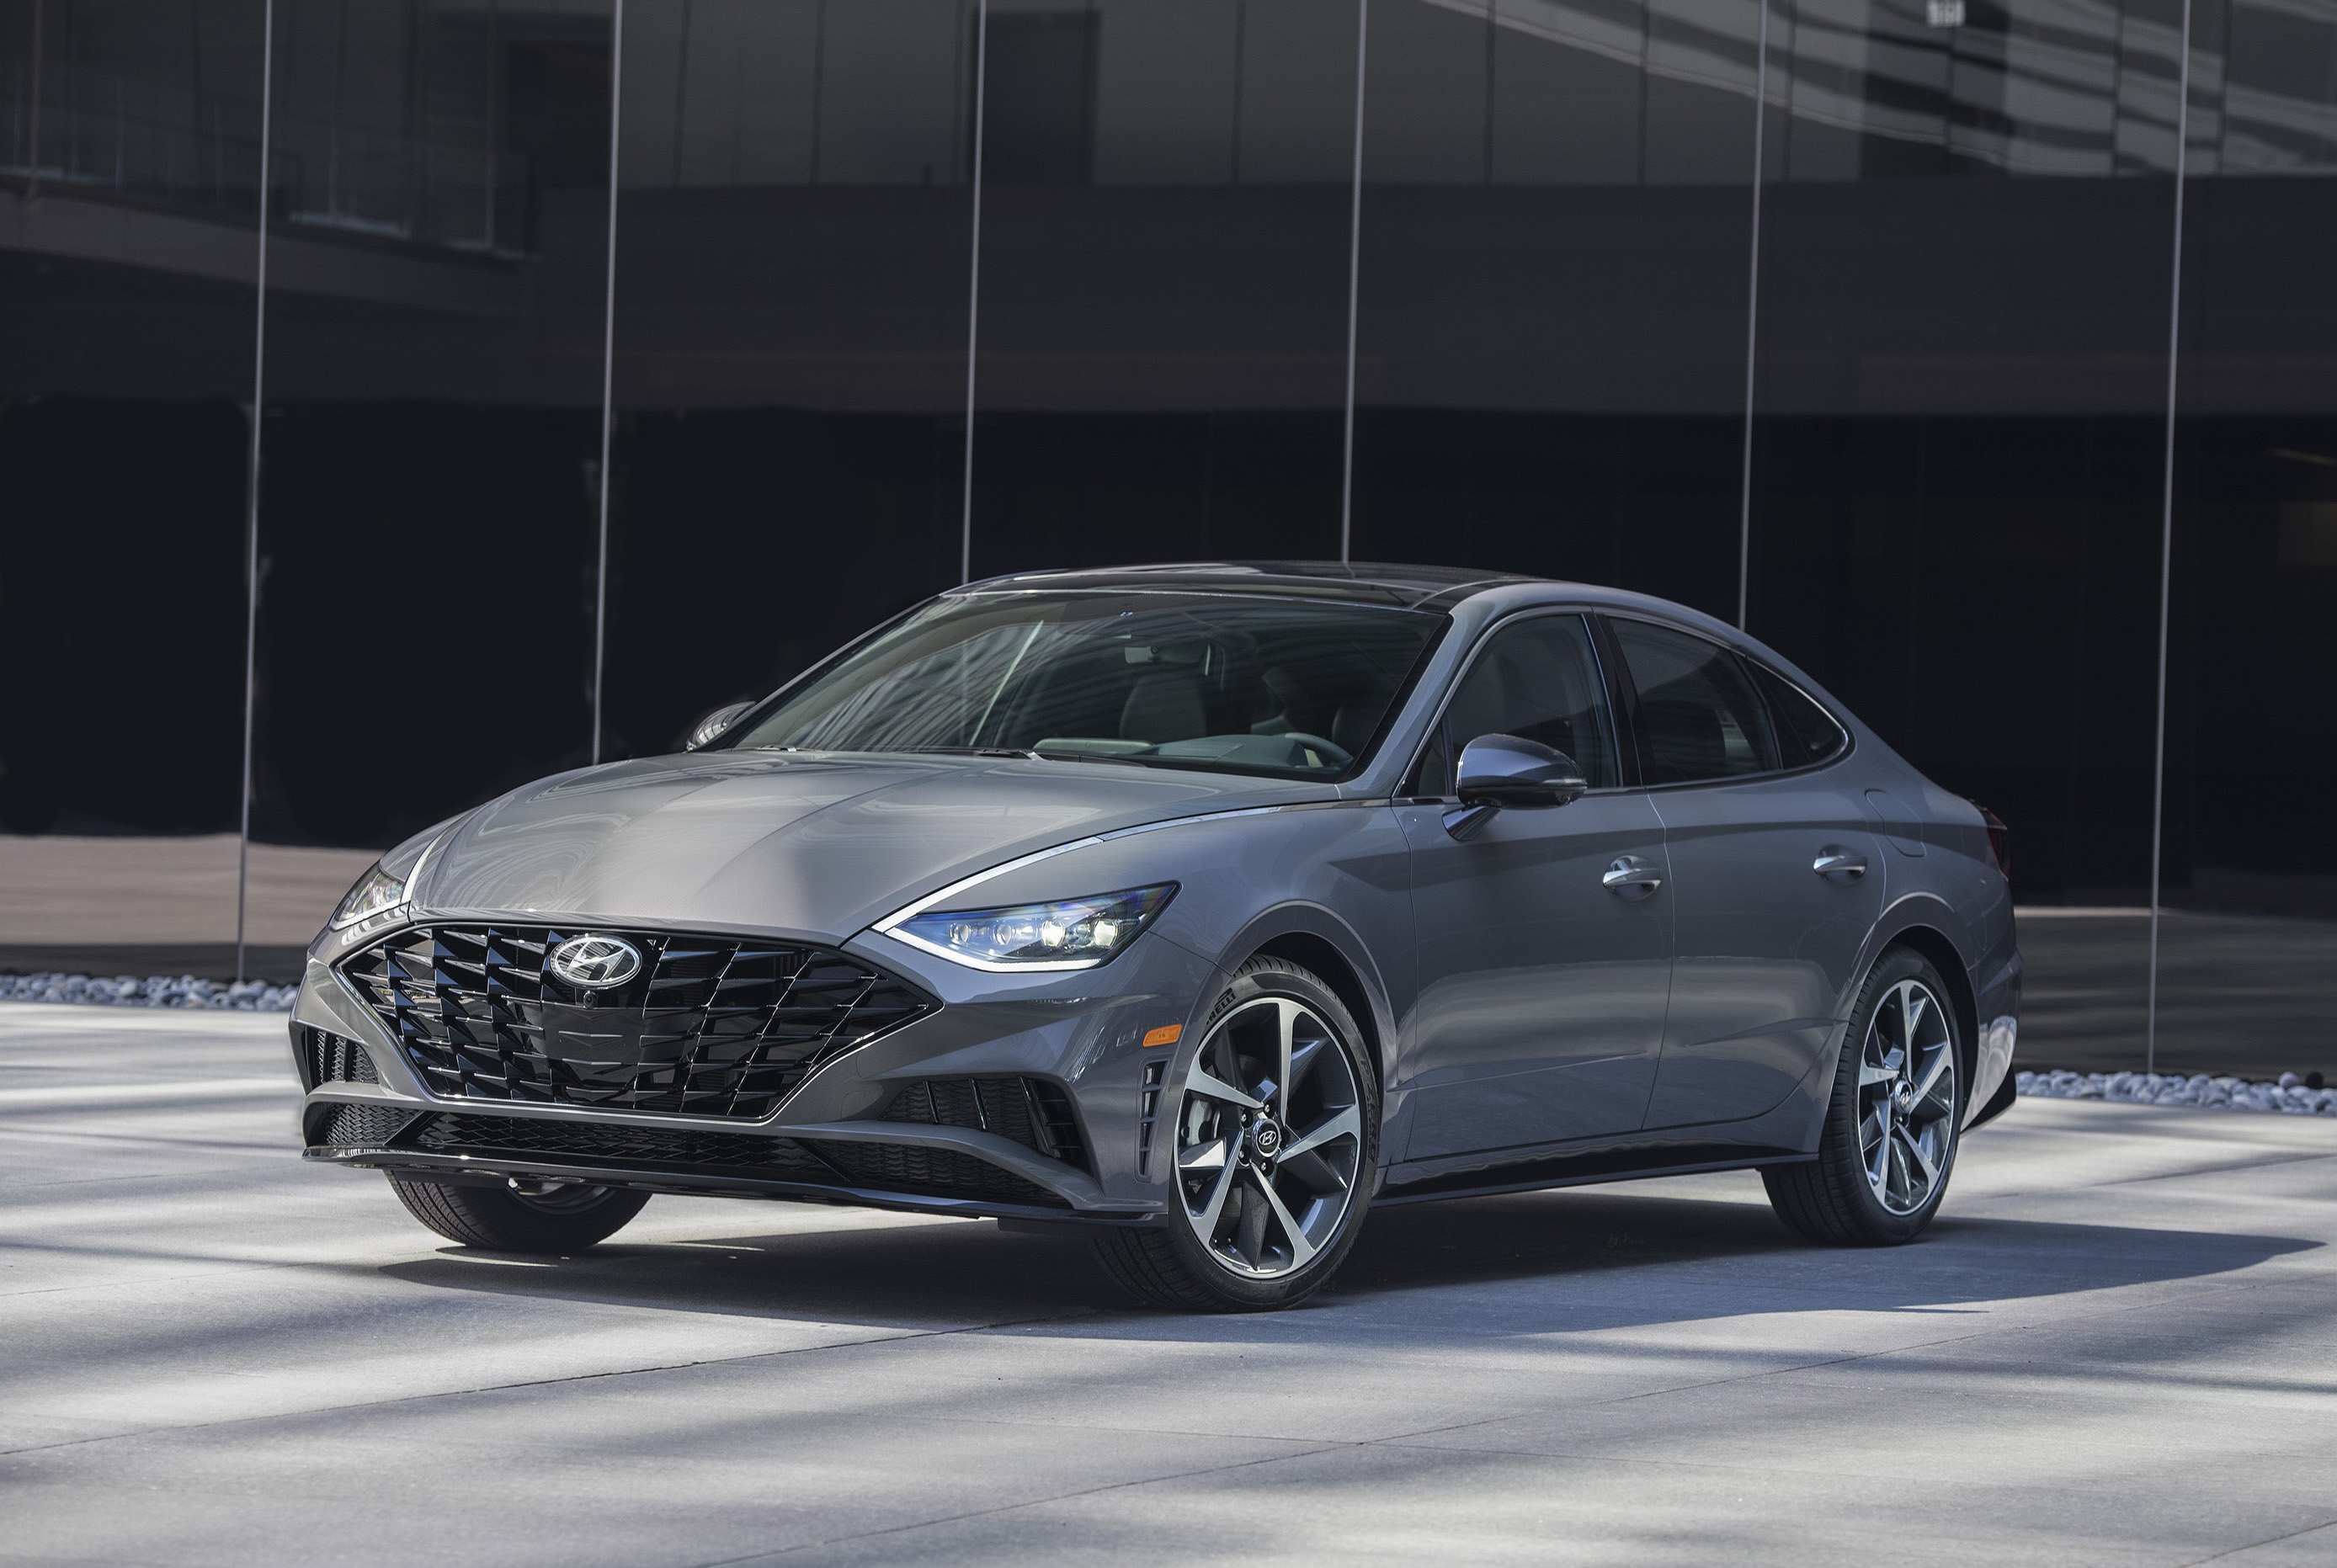 78 New When Will The 2020 Hyundai Sonata Be Available Engine with When Will The 2020 Hyundai Sonata Be Available